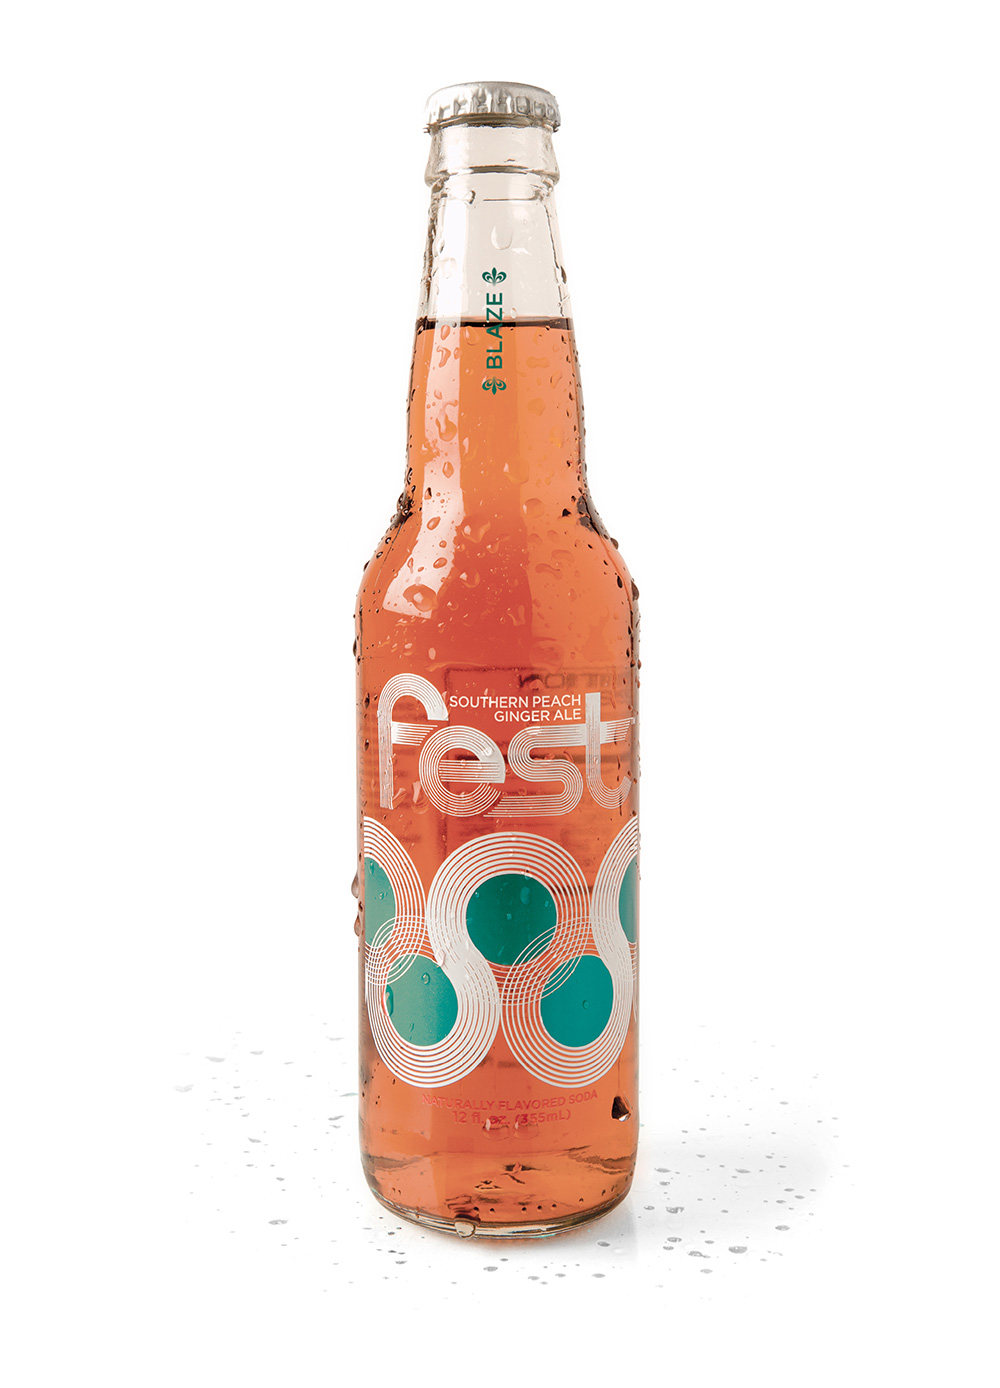 Fest Cola advertising campaign and branded logo and packaging design by Cerberus Agency in New Orleans.